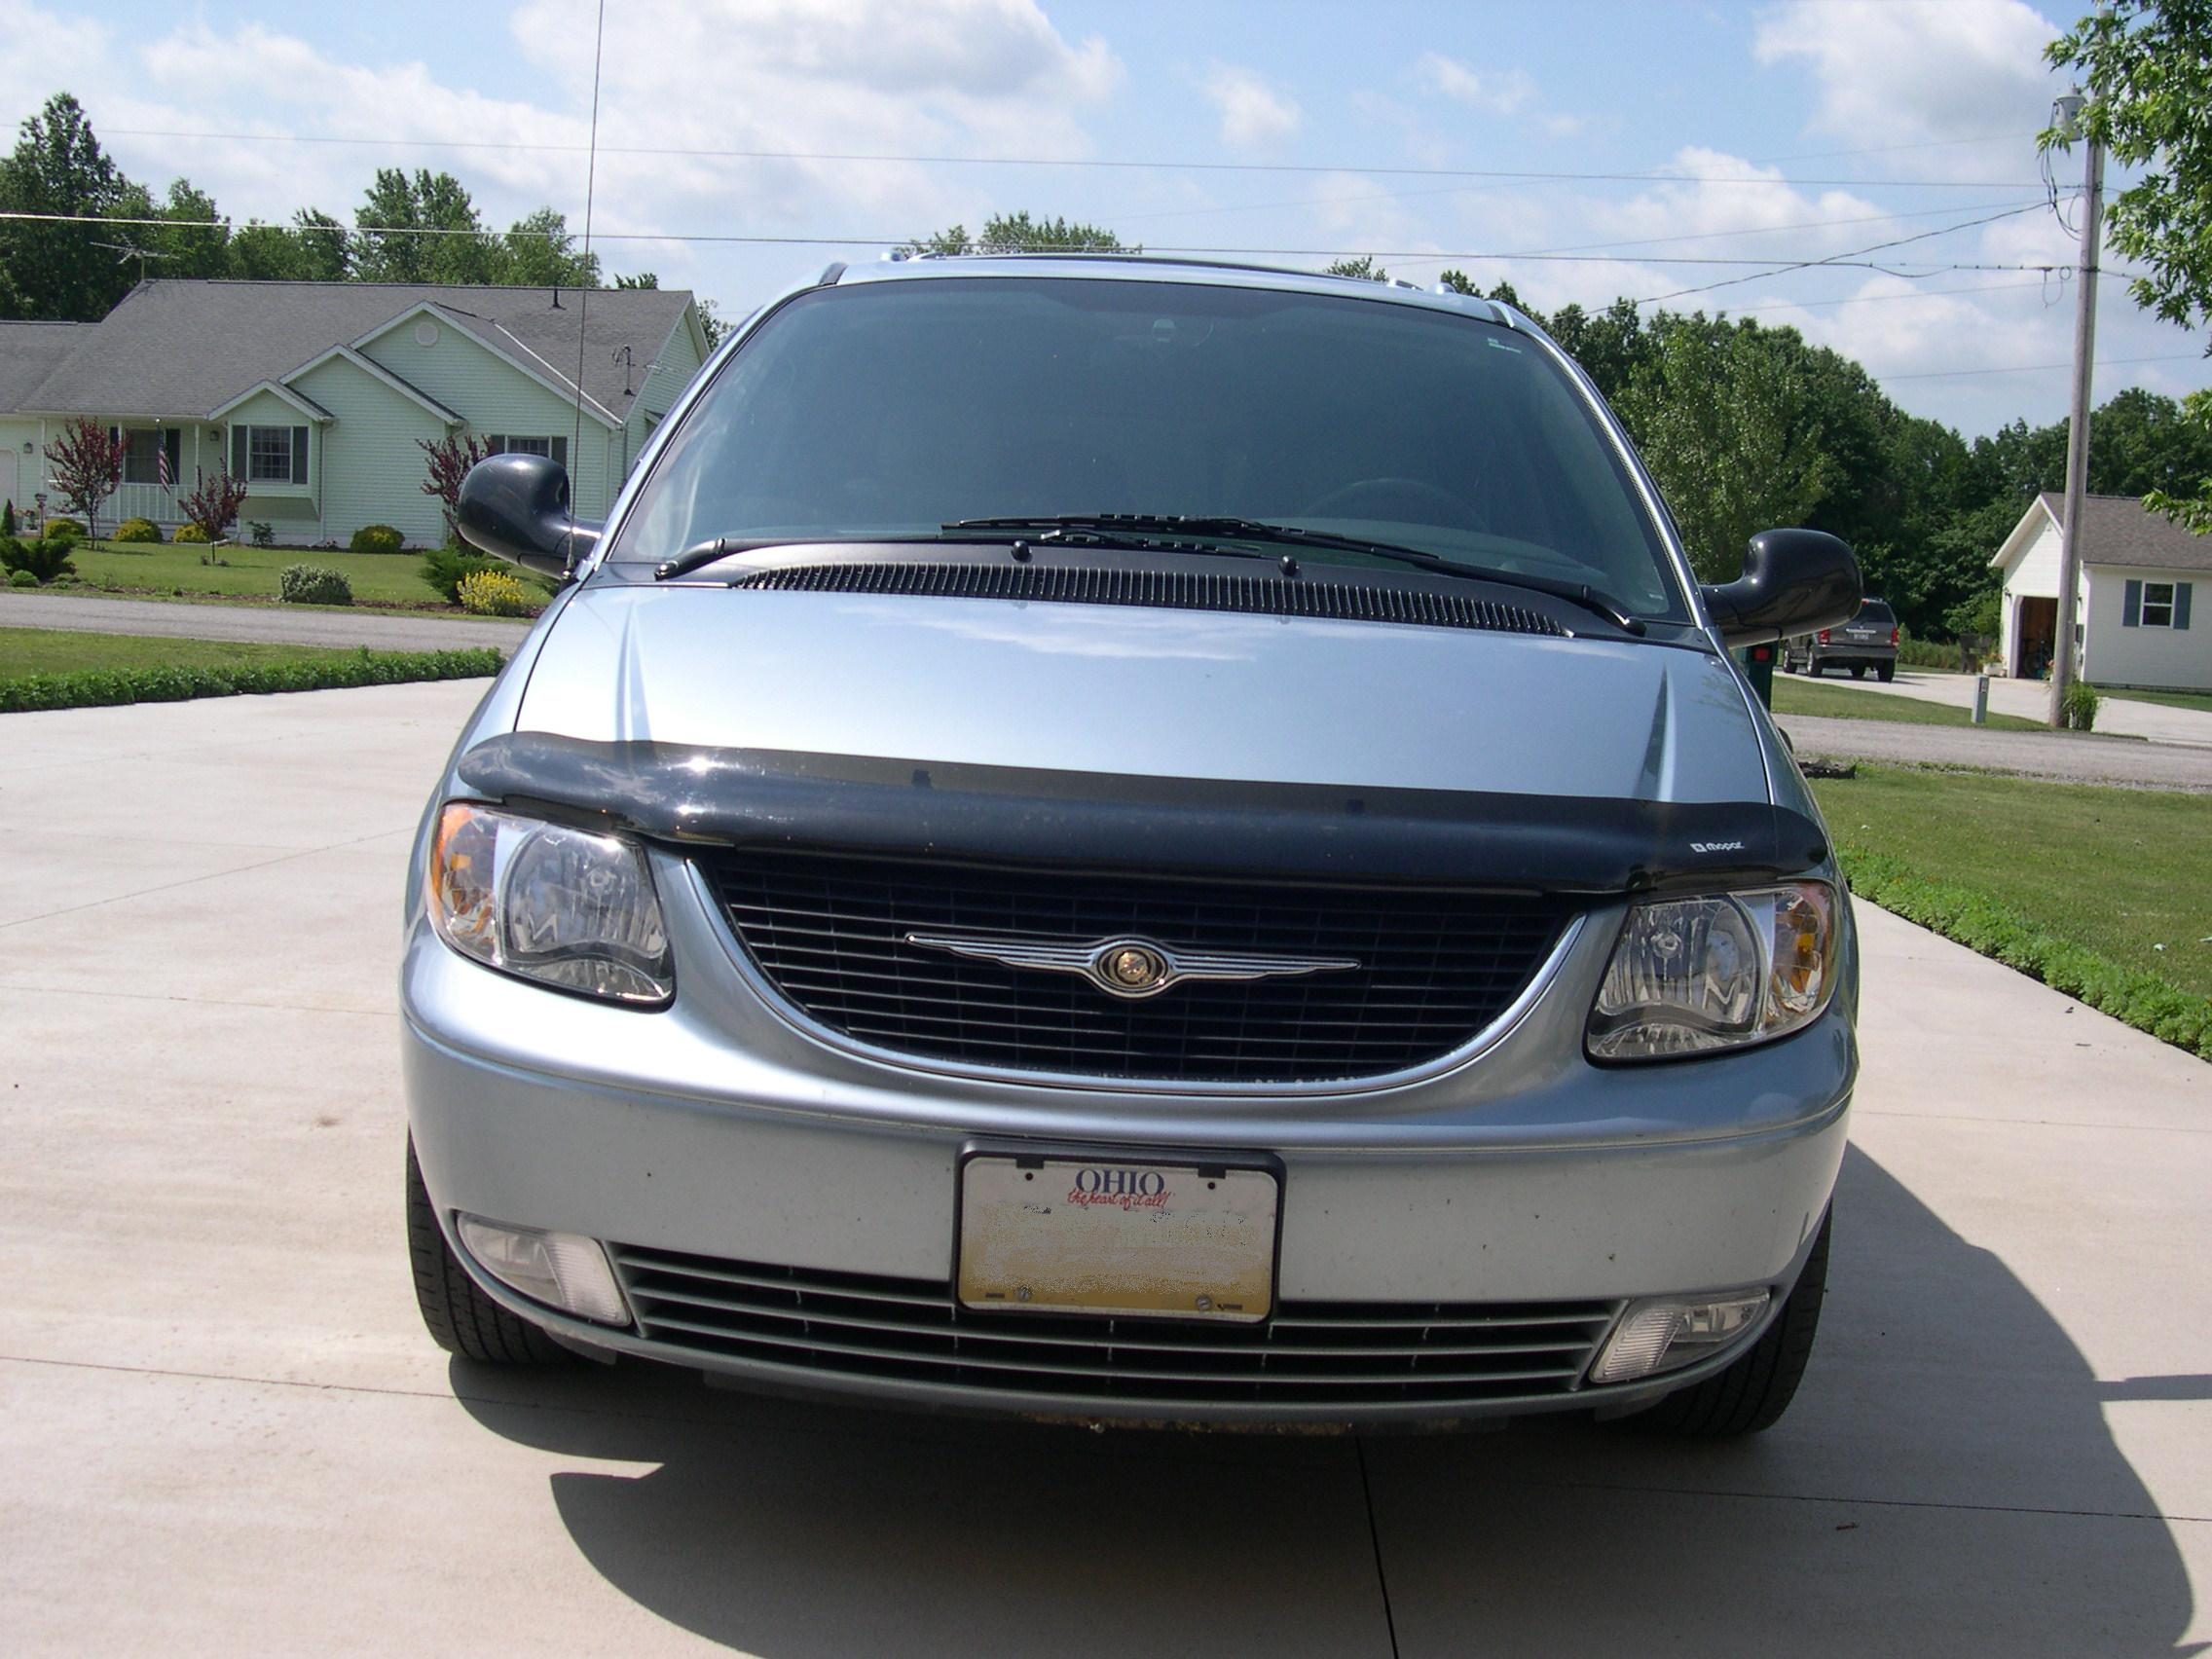 file 2004 chrysler town and country wikimedia commons. Black Bedroom Furniture Sets. Home Design Ideas